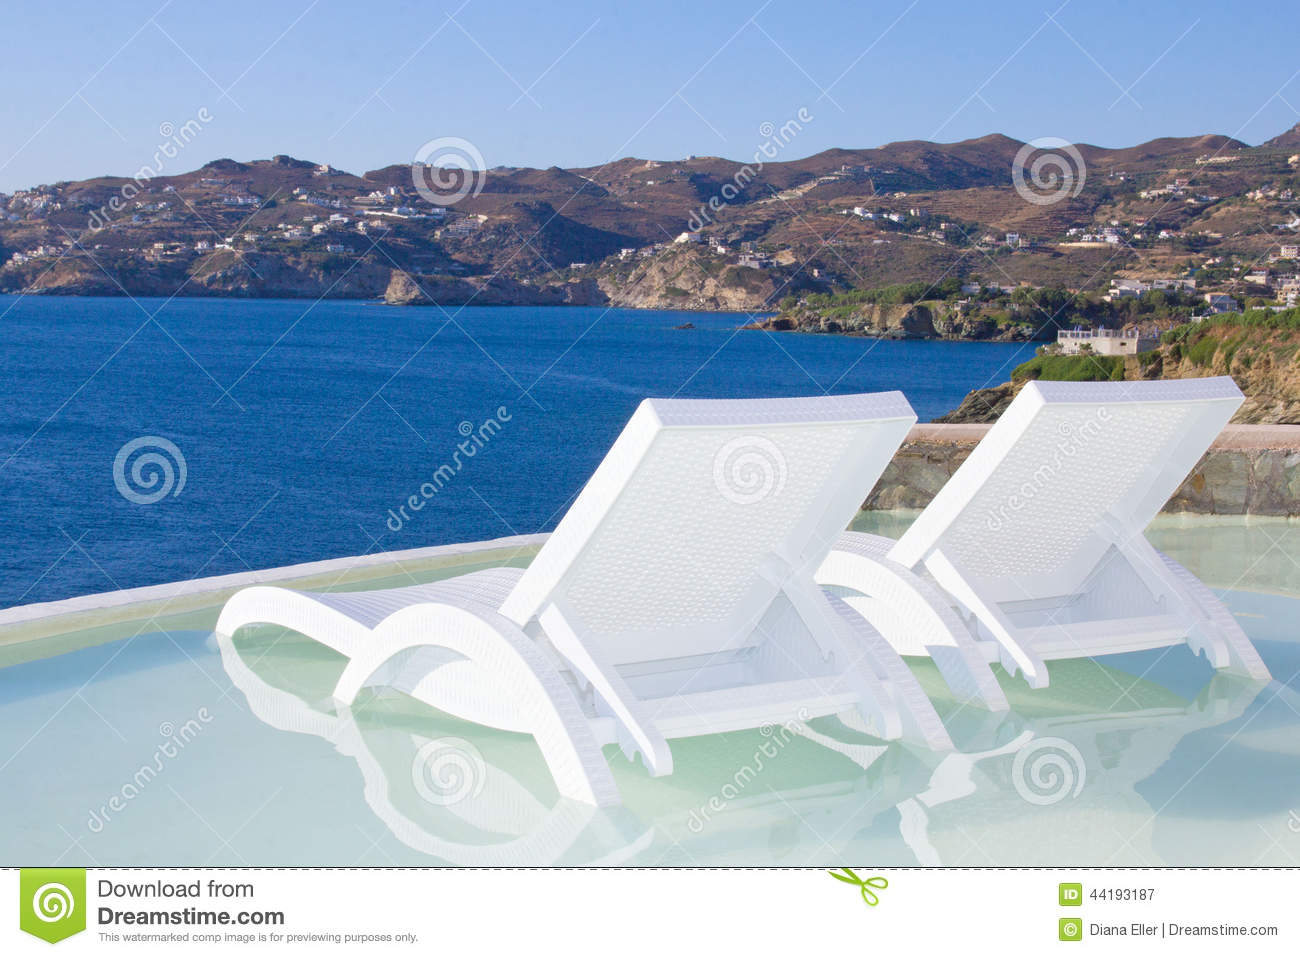 Two White Beach Chairs In Pool With Sea View In Greece Stock Image